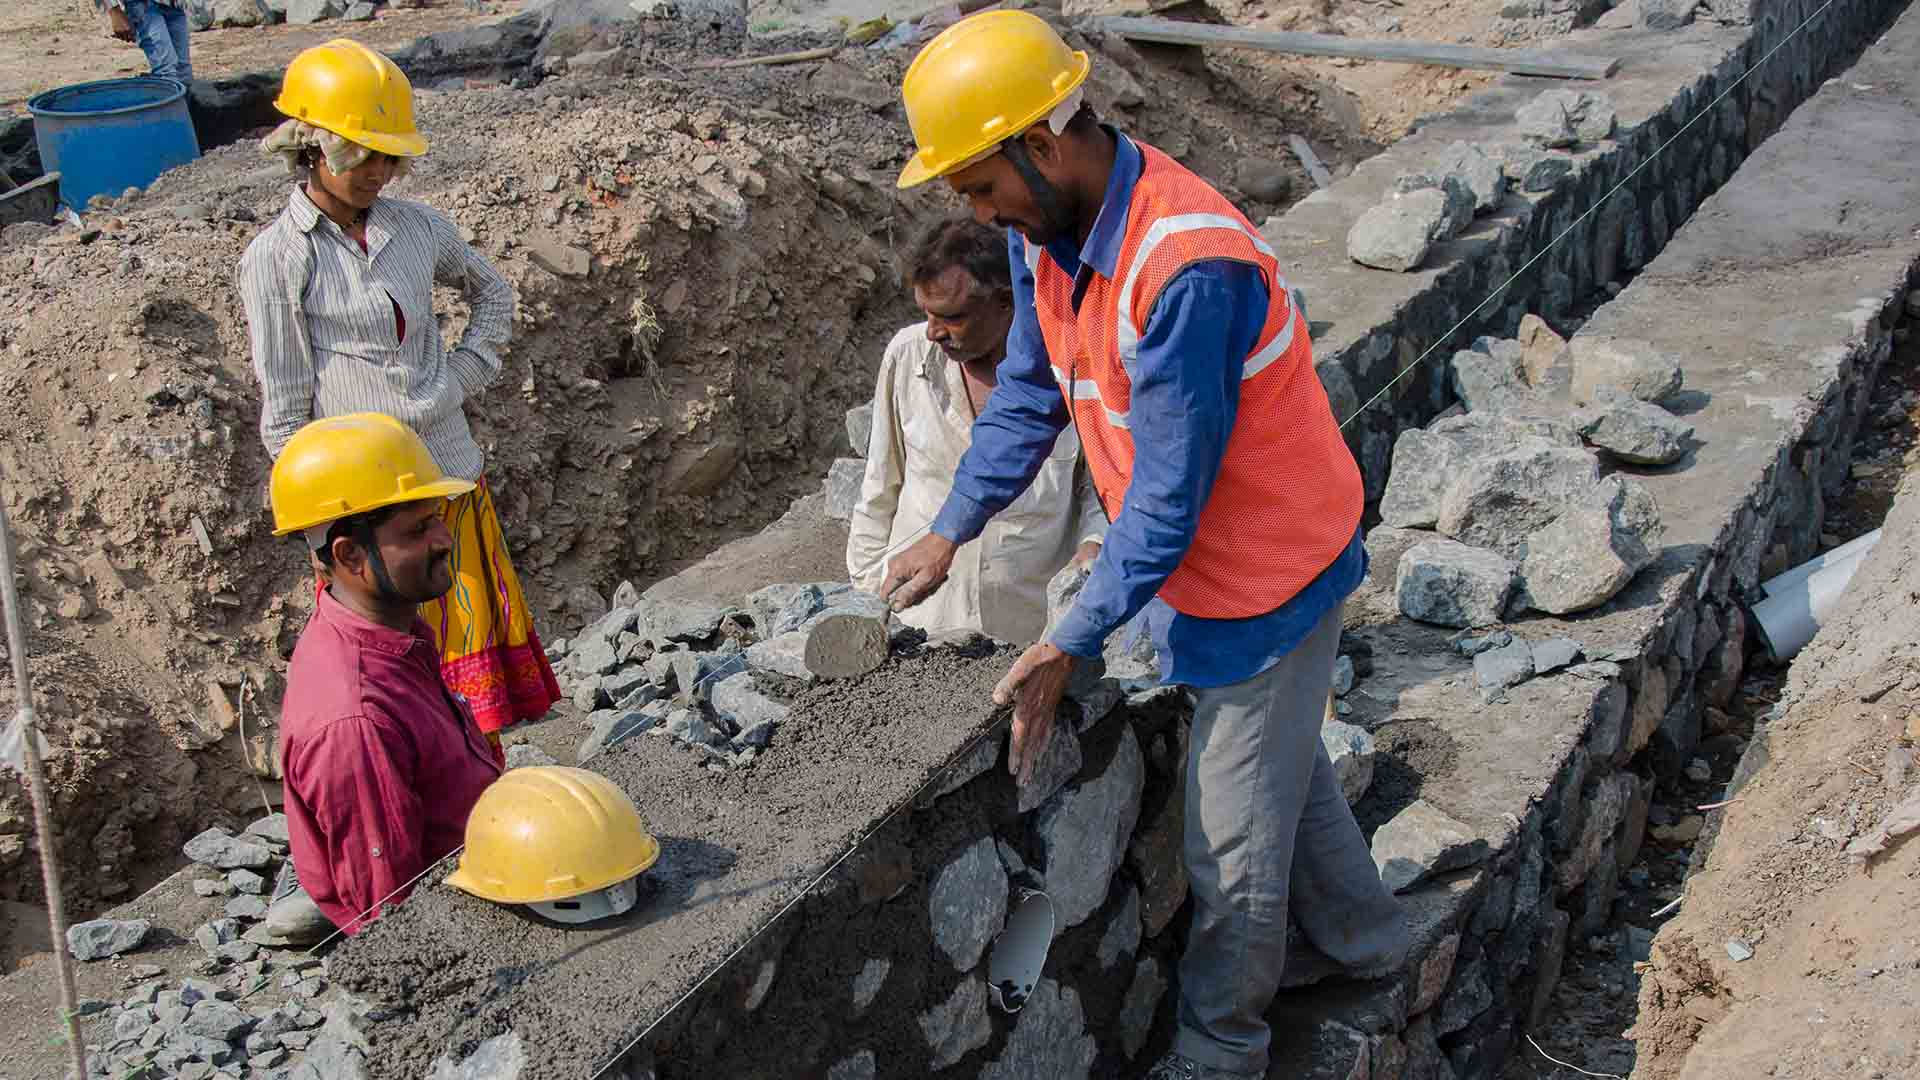 2.5 lakh homes planned for construction workers in Maharashtra